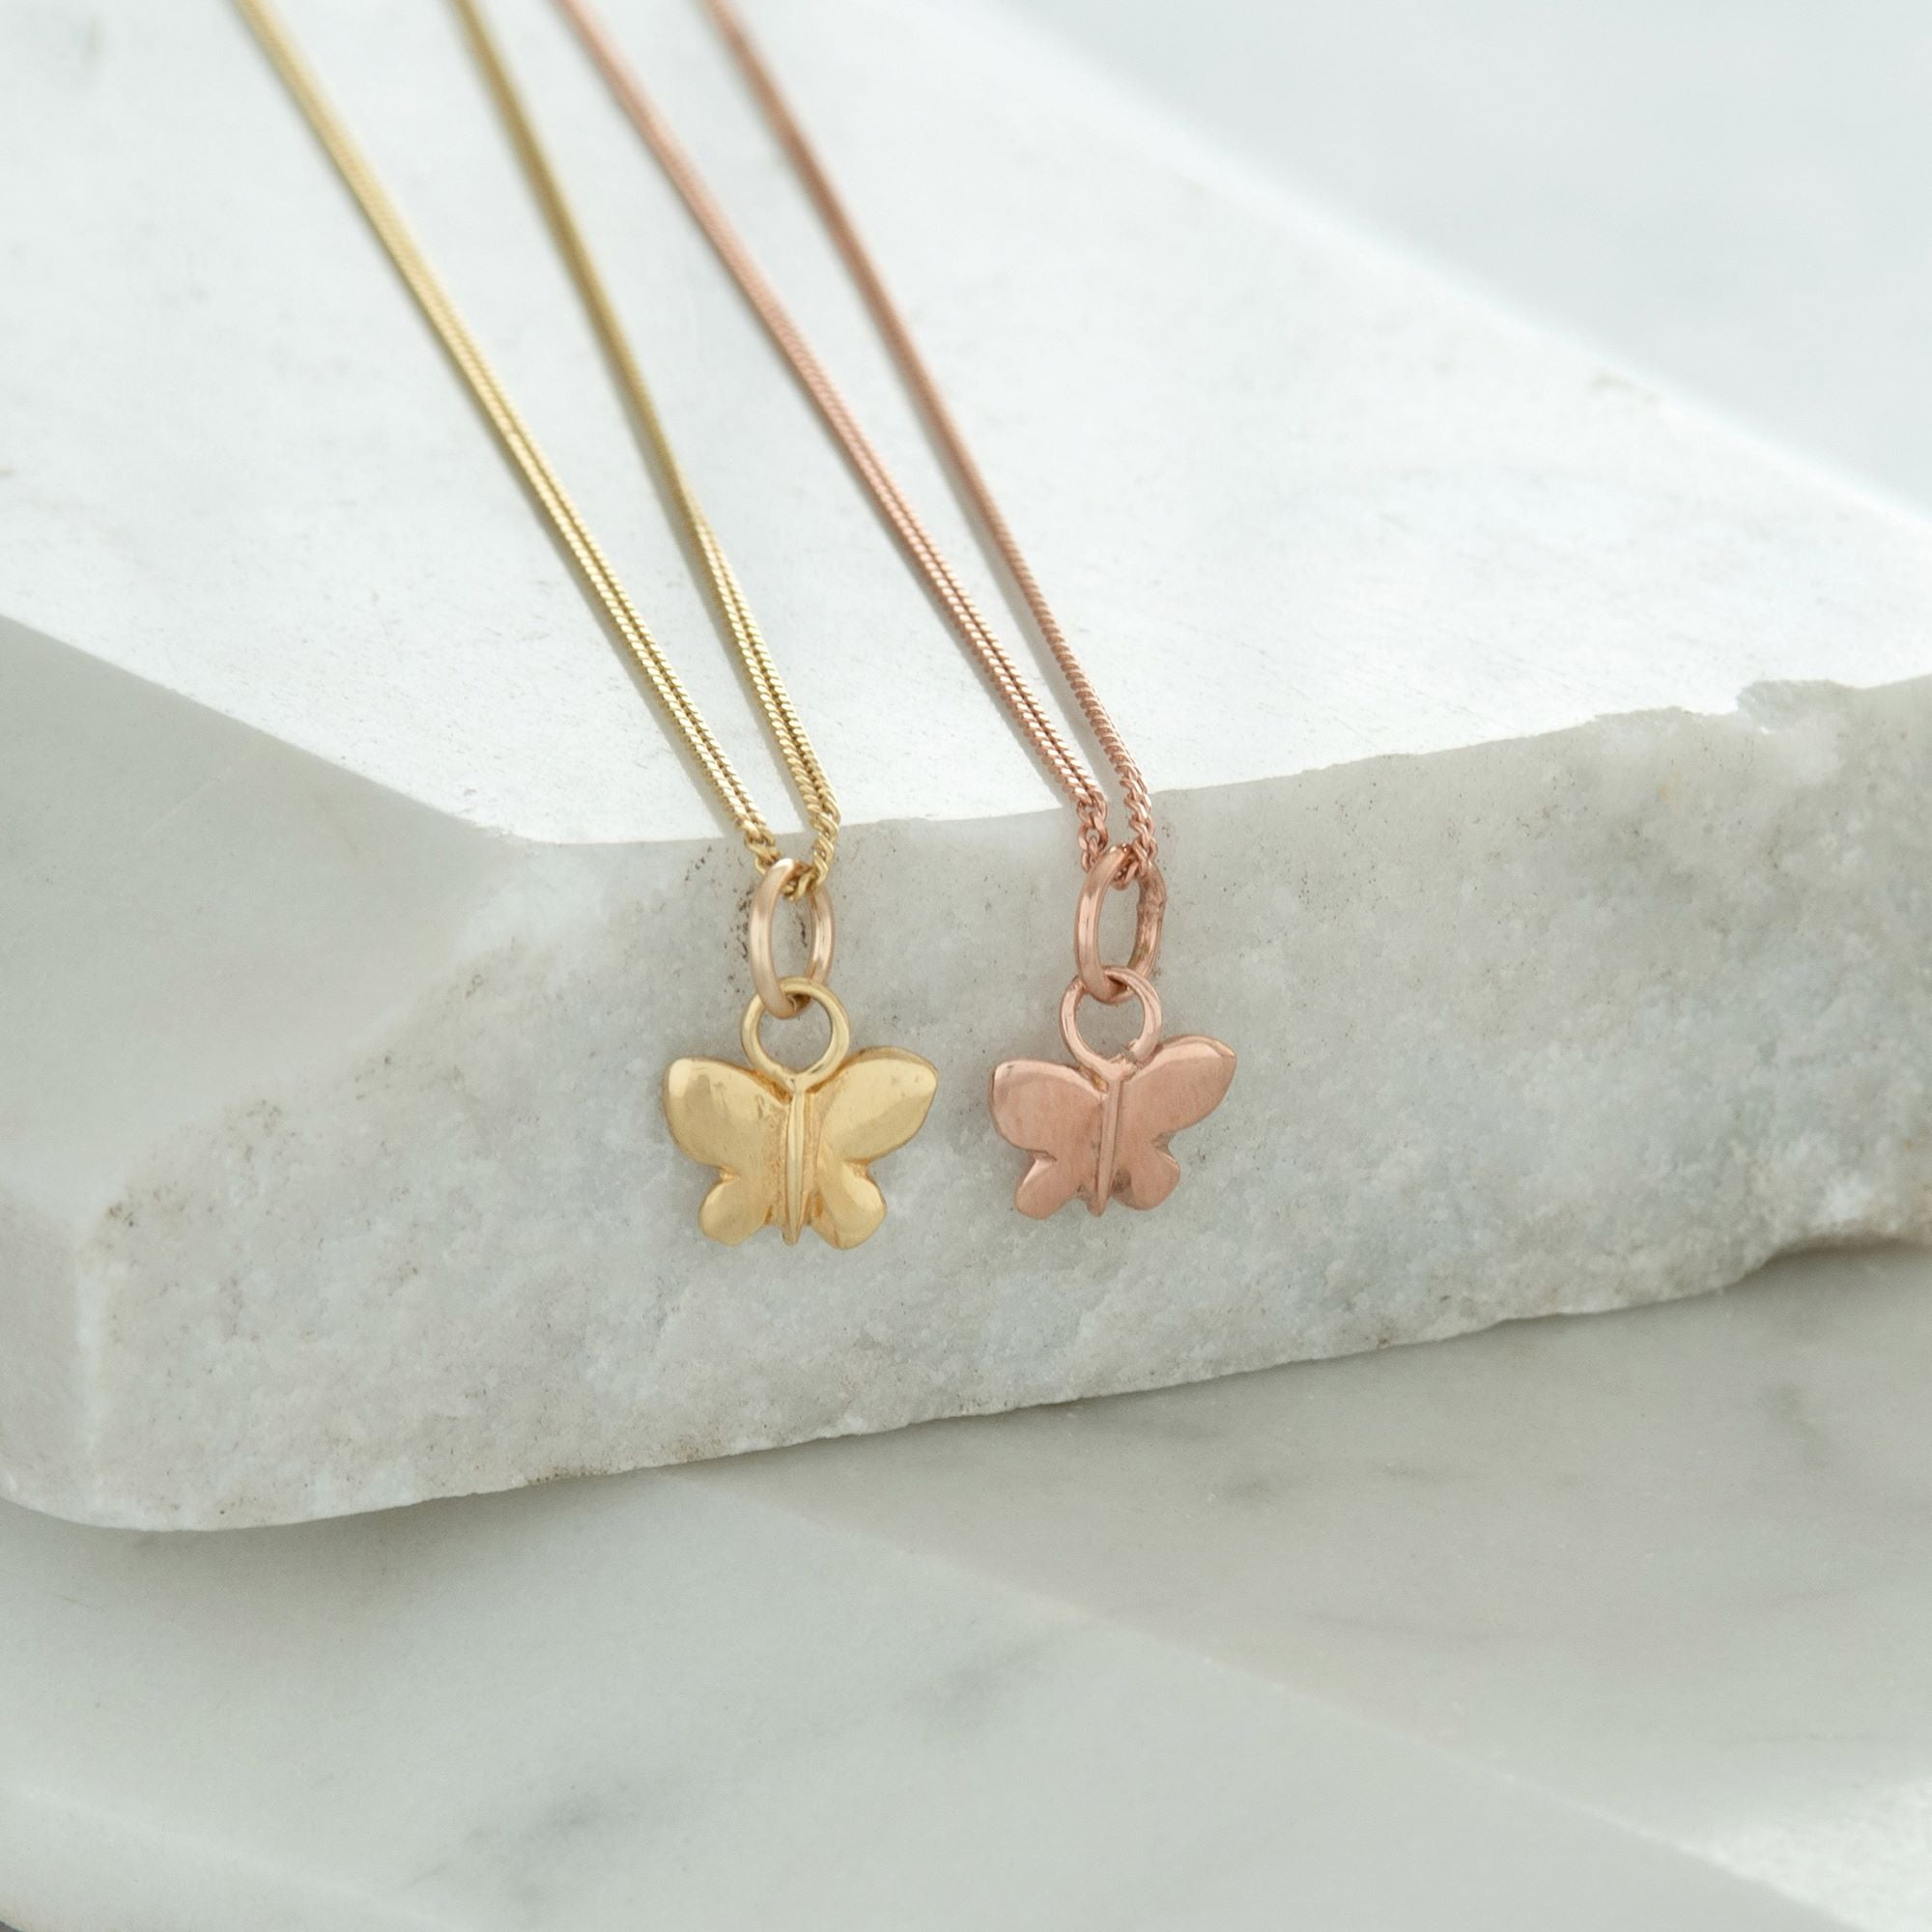 Tiny Butterfly Charm Necklace Gold or Rose Gold Vermeil